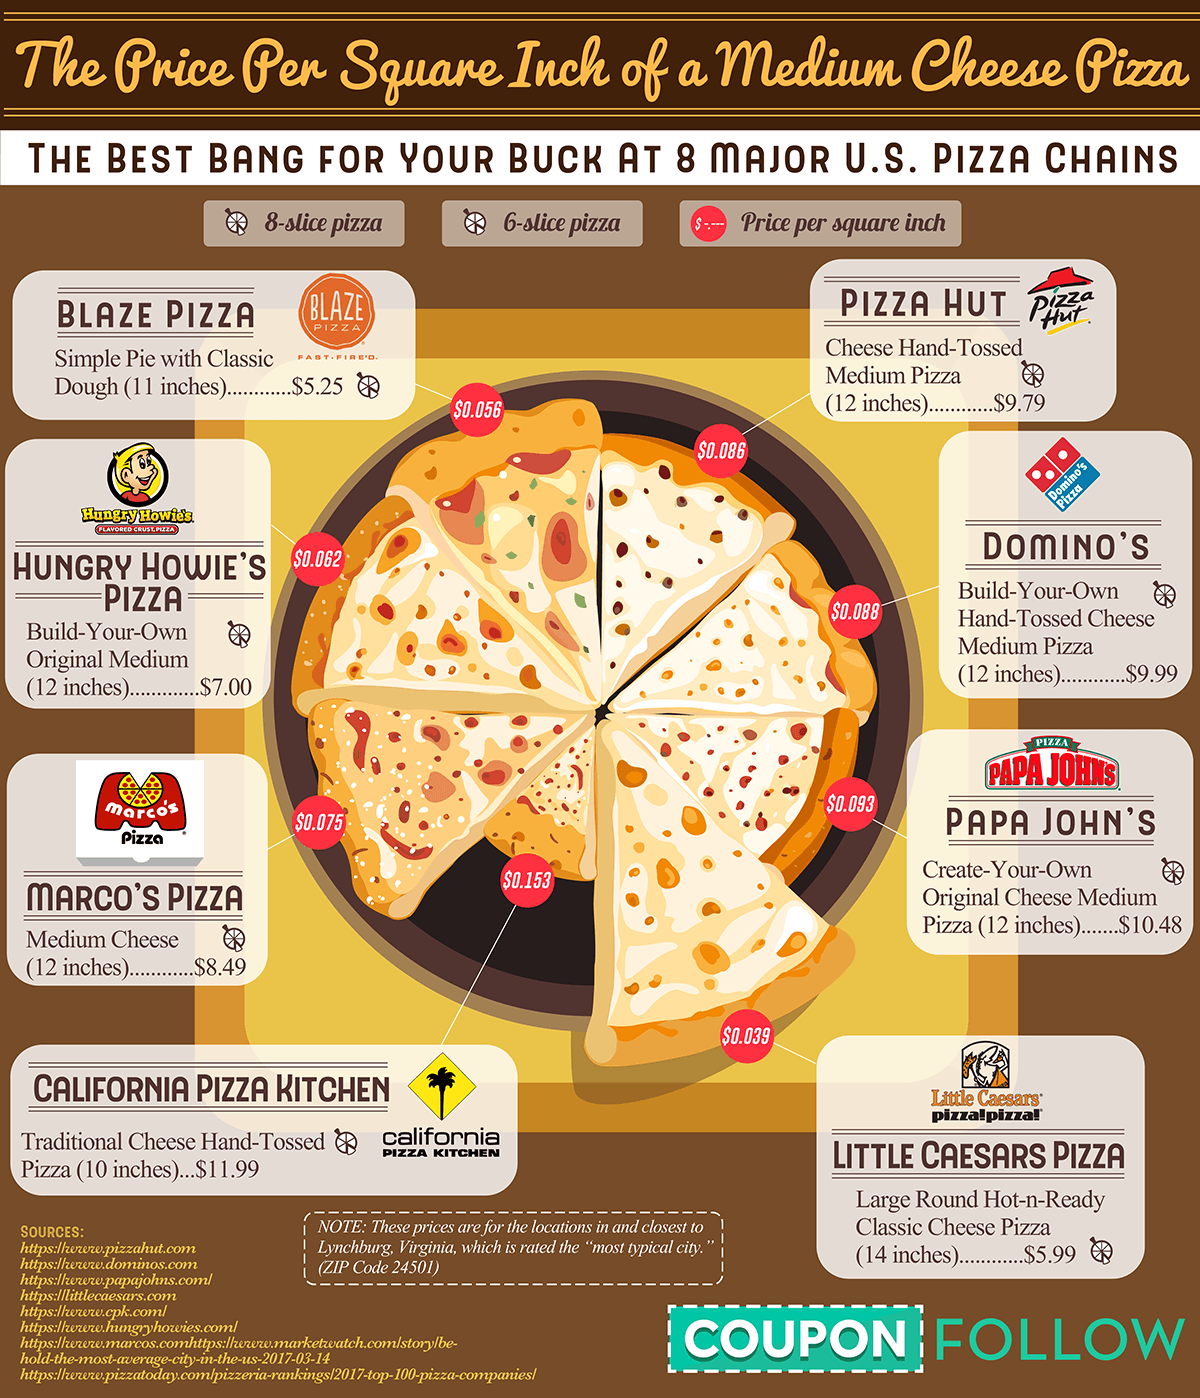 The Price Per Square Inch of a Medium Cheese Pizza - CouponFollow.com - Infographic